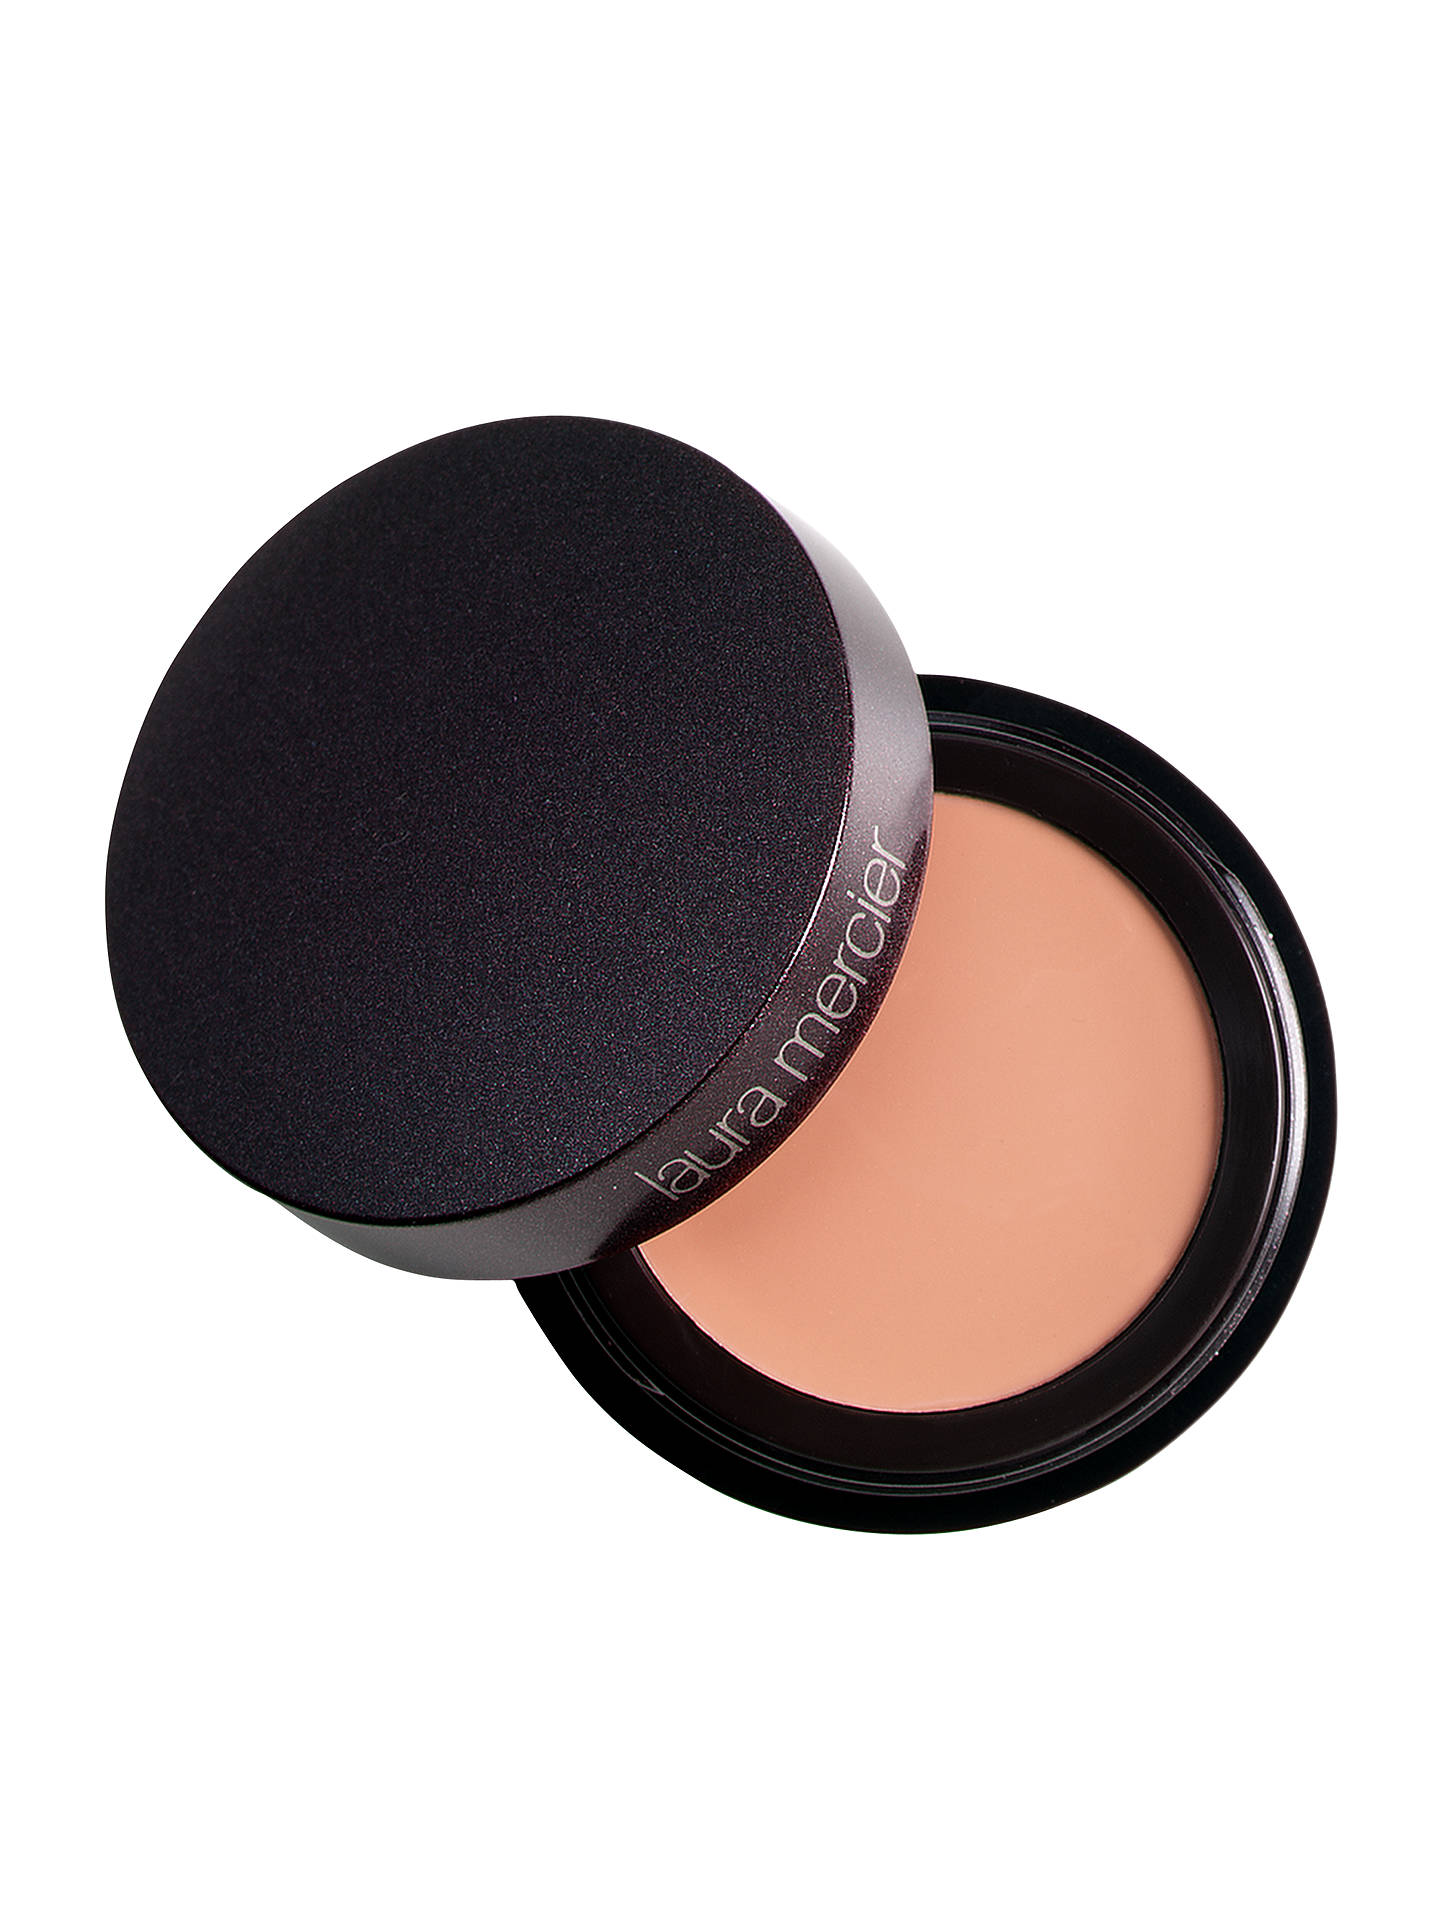 BuyLaura Mercier Secret Concealer, No.1 Online at johnlewis.com